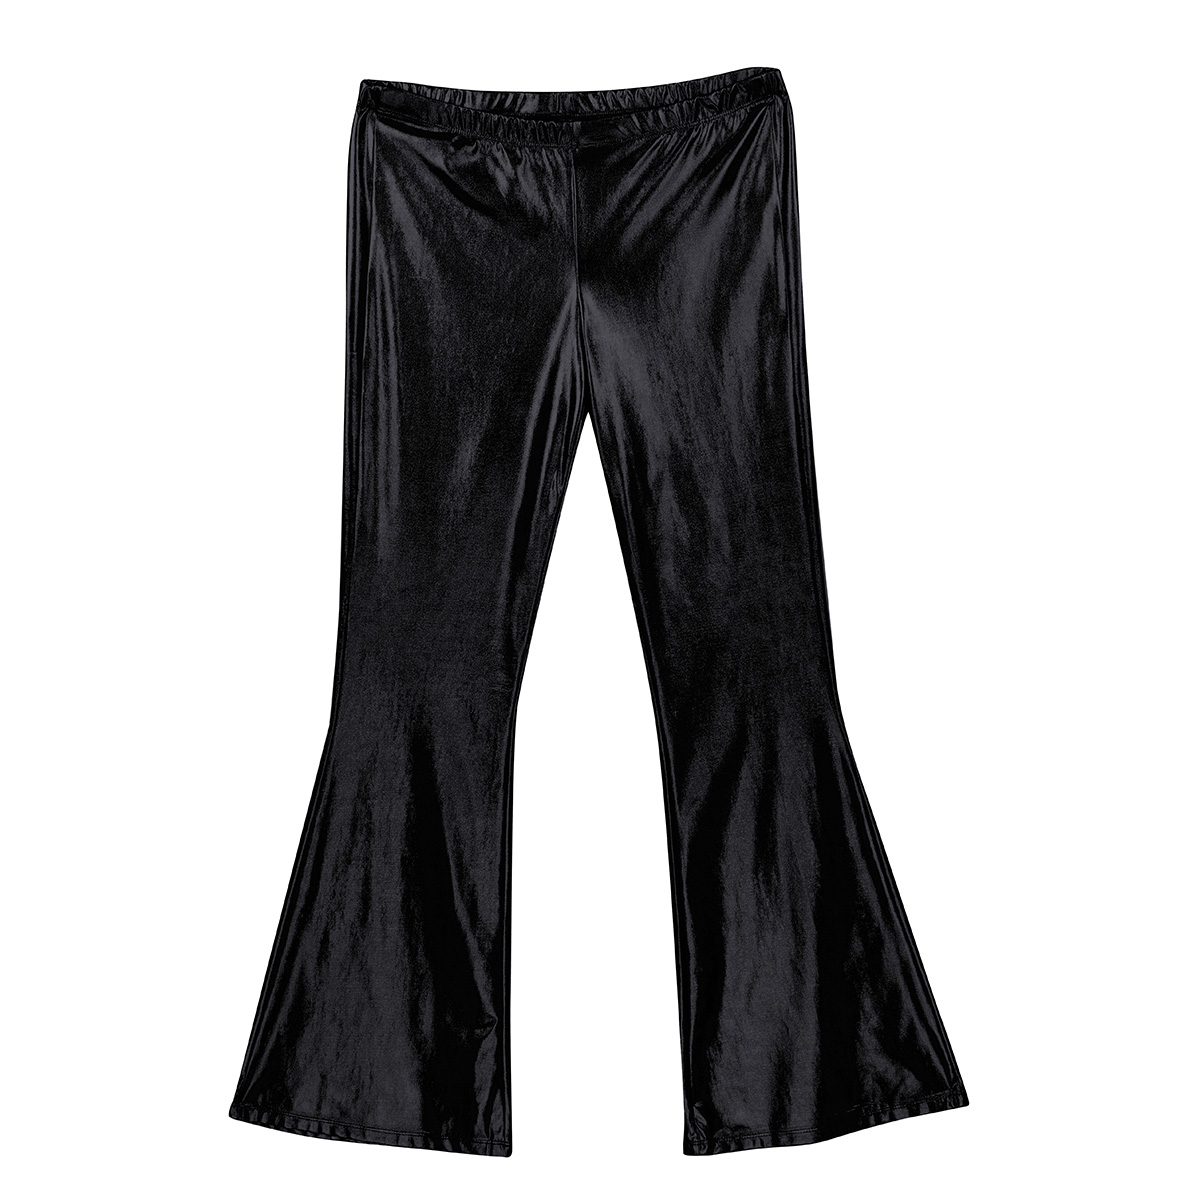 ChicTry Adults Mens Shiny Metallic Disco Pants with Bell Bottom Flared Long Pants Dude Costume Trousers for 70's Theme Parties 36